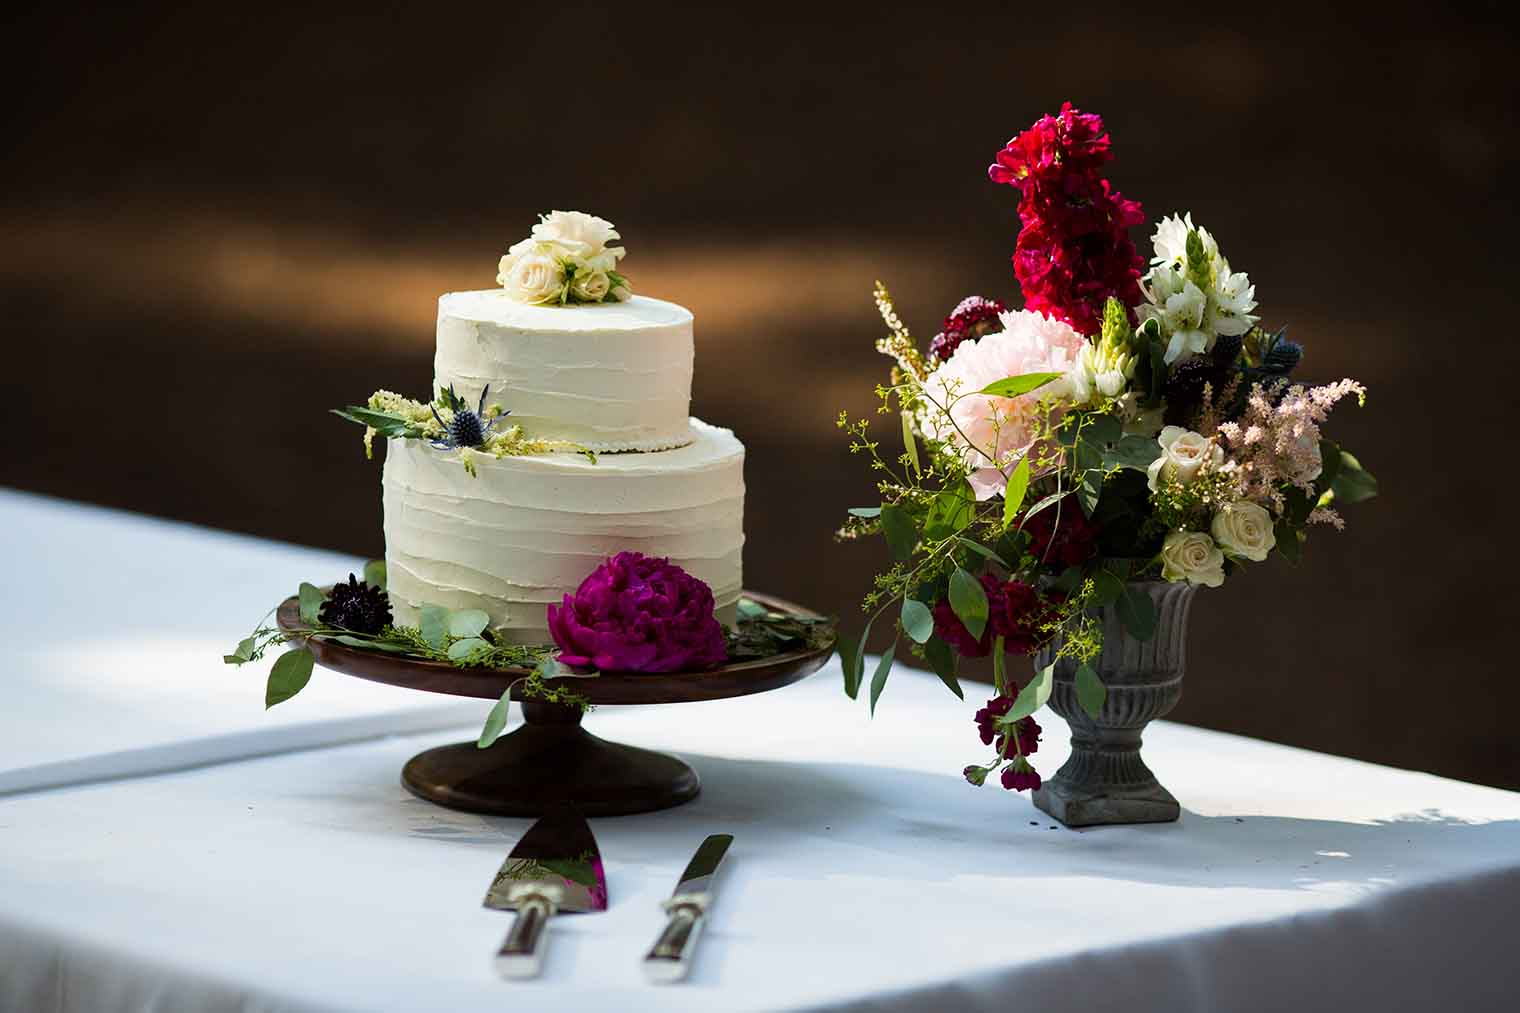 Wedding Cake at Roberts Regional Park in Oakland California